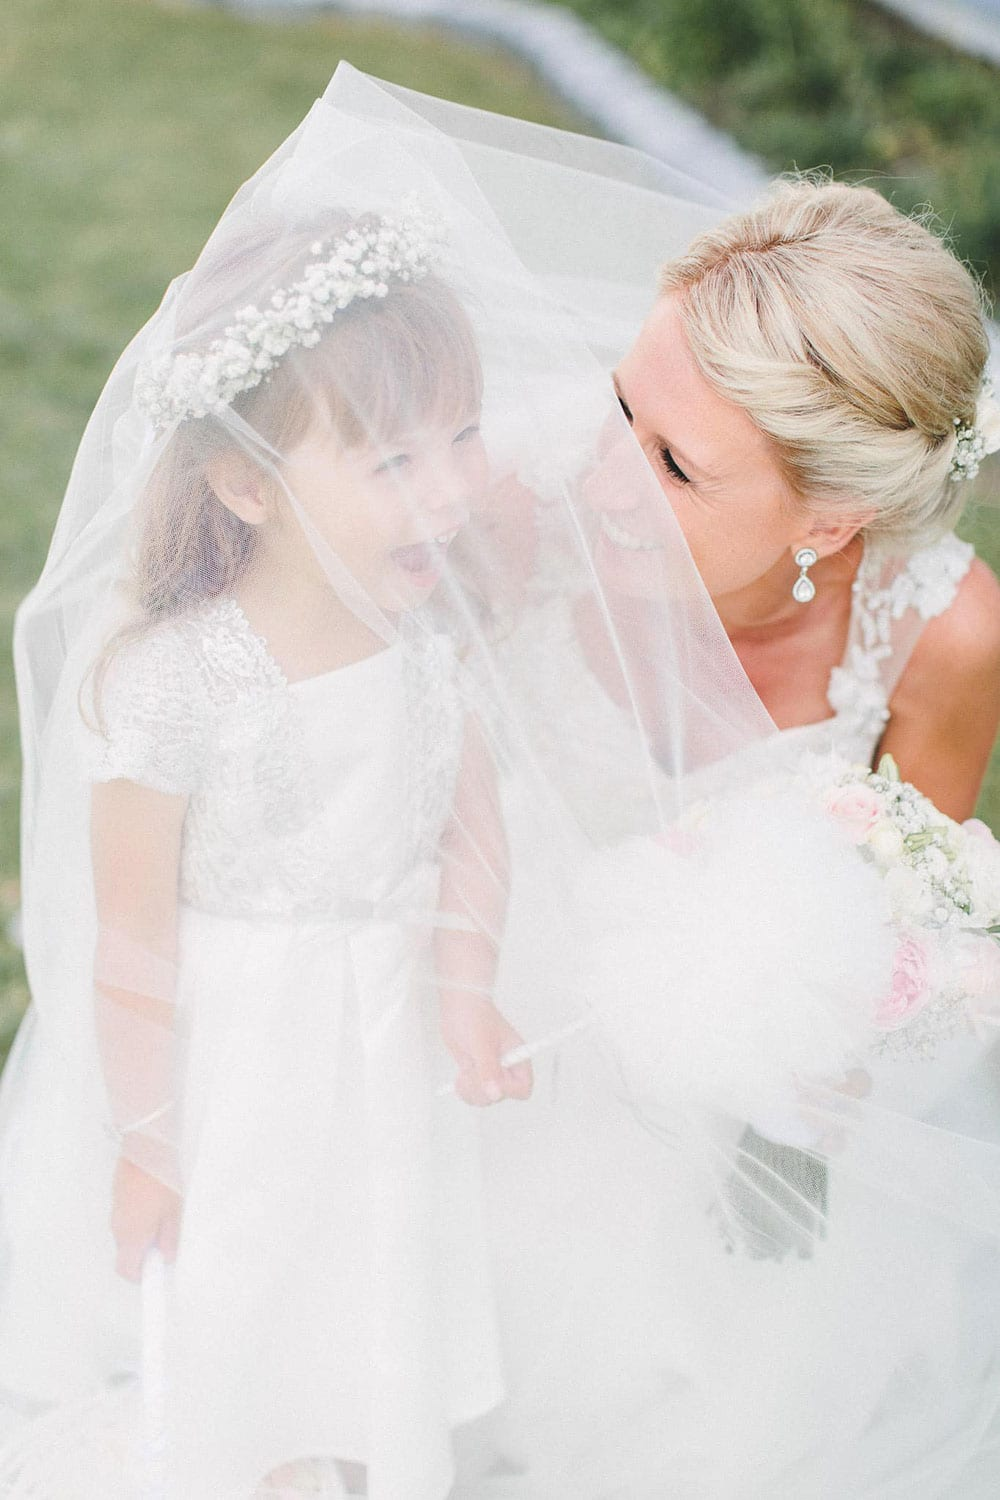 Real Weddings | Vinka Design | Real Brides Wearing Vinka Gowns | Louise and Ryan - Louise with flower girl in veil